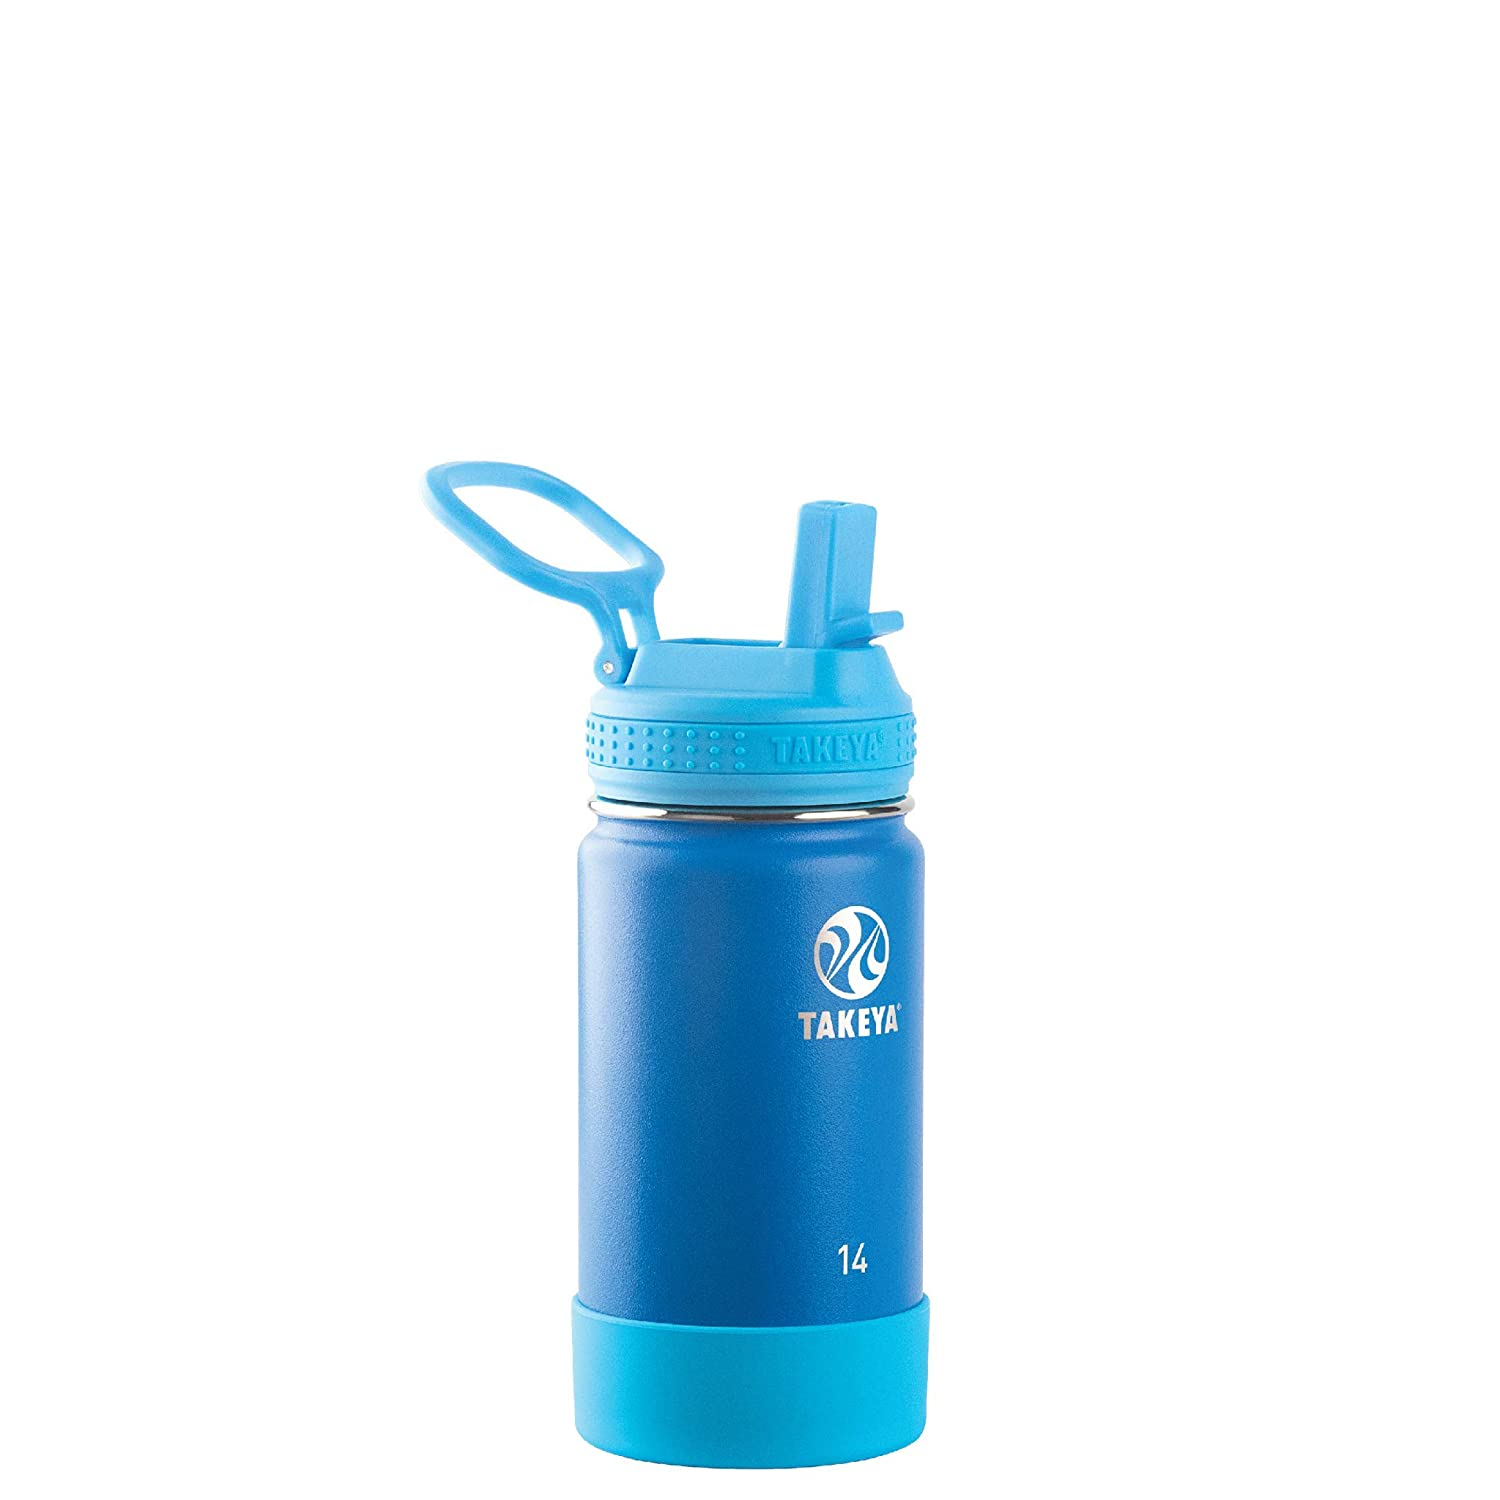 Takeya 51129 Kids Insulated Water Bottle w/Straw Lid, 14 Ounce, Sky